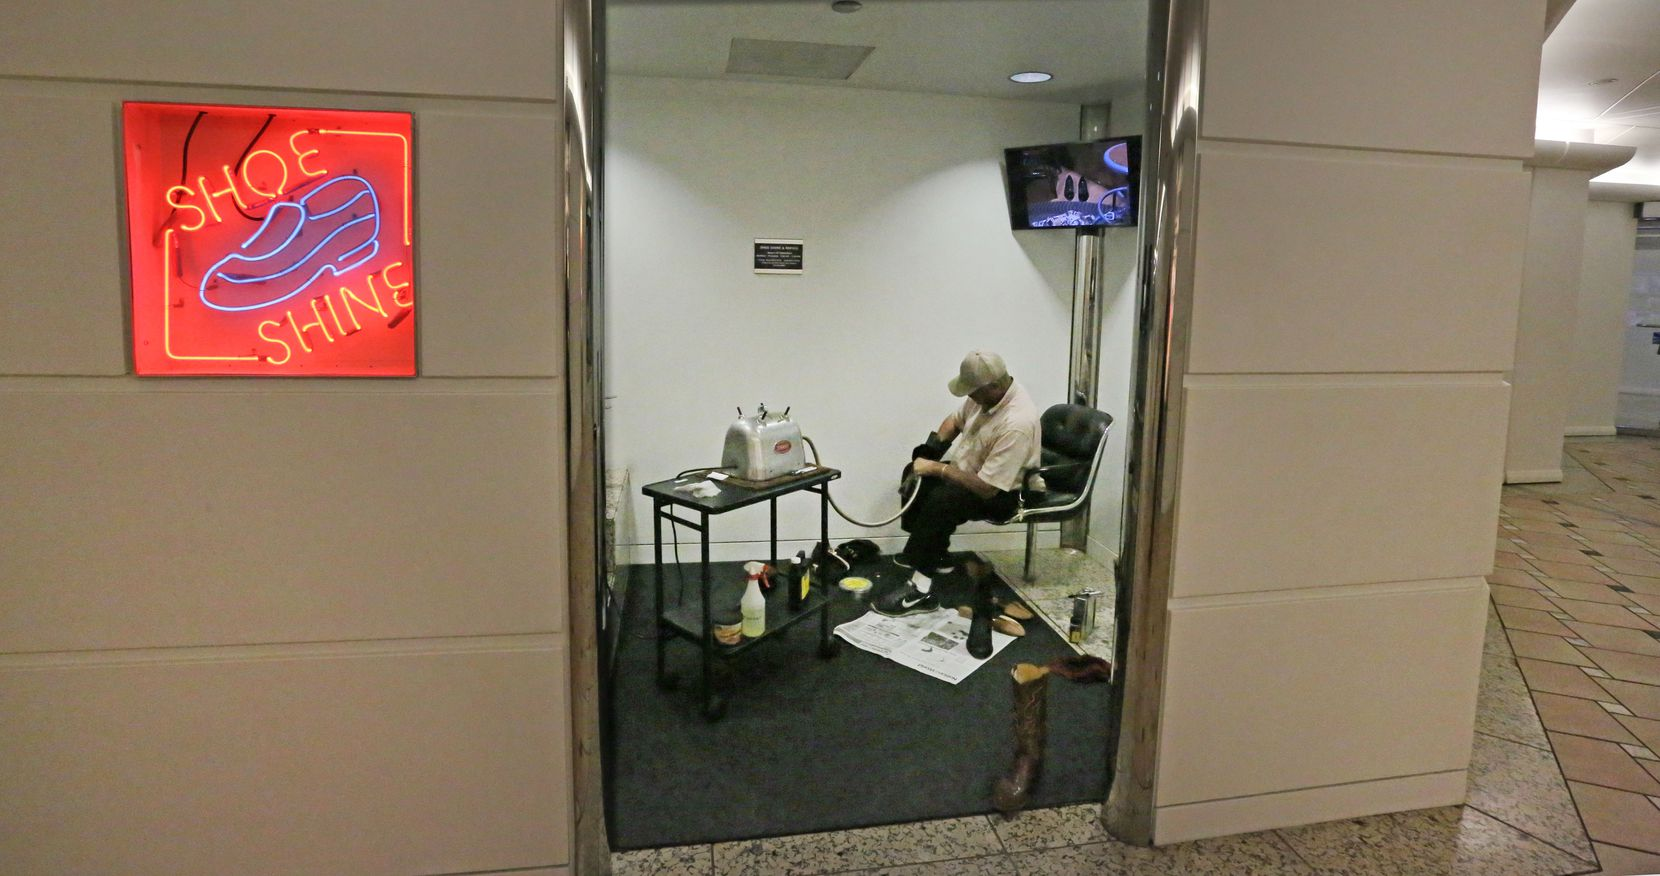 Larry Washington mans his shoe shine shop below the Bank of America Building in the tunnels below street level in downtown Dallas, photographed on Wednesday, May 16, 2018.